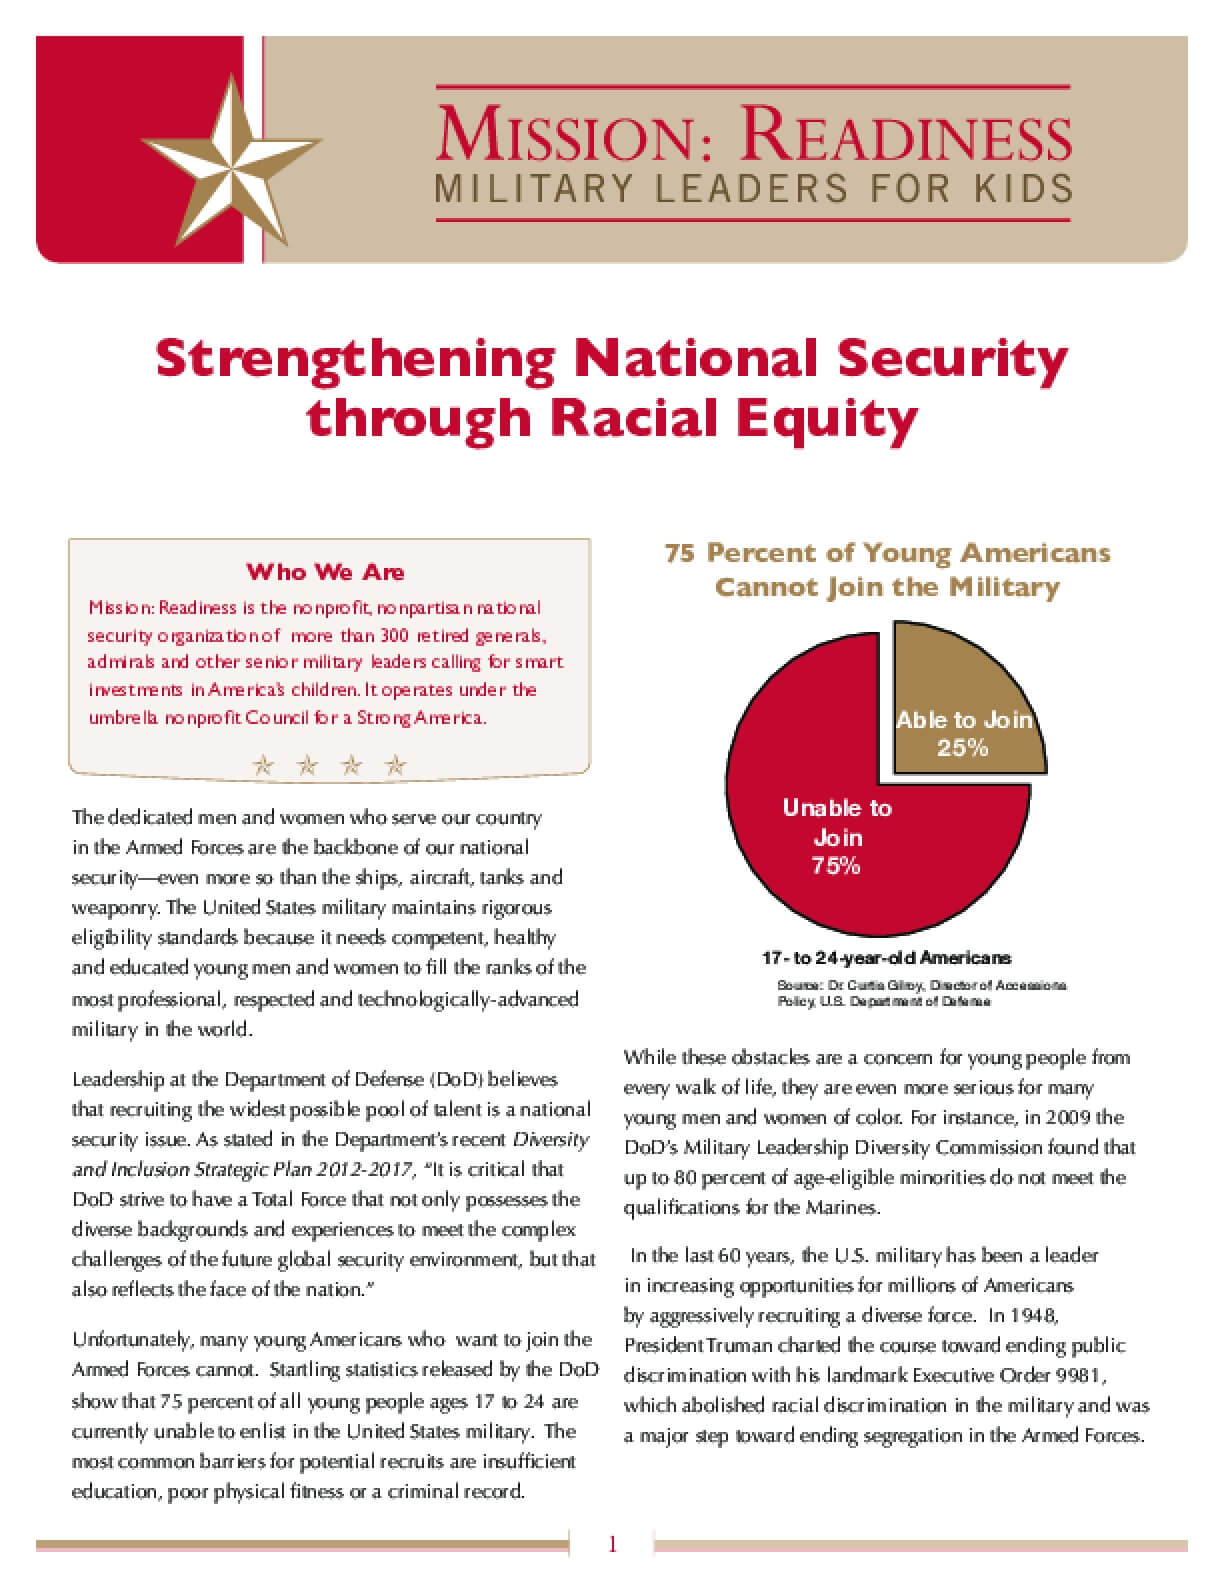 Strengthening National Security through Racial Equity